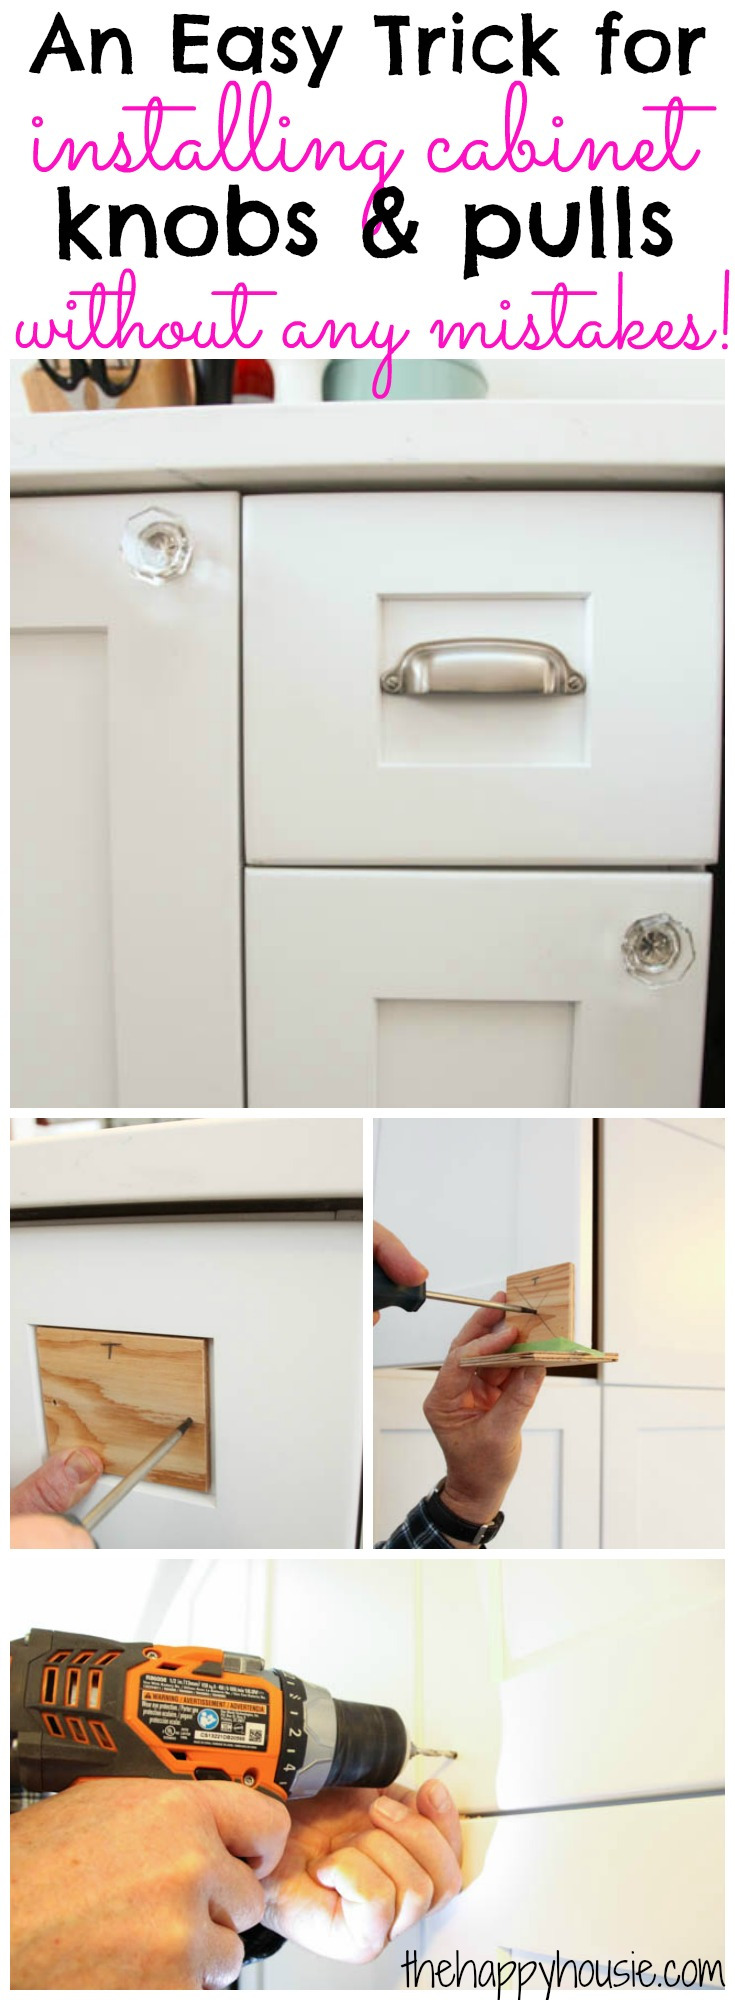 Cabinet Door Handle Placement Beautiful How to Install Cabinet Knobs with A Template A Trick for